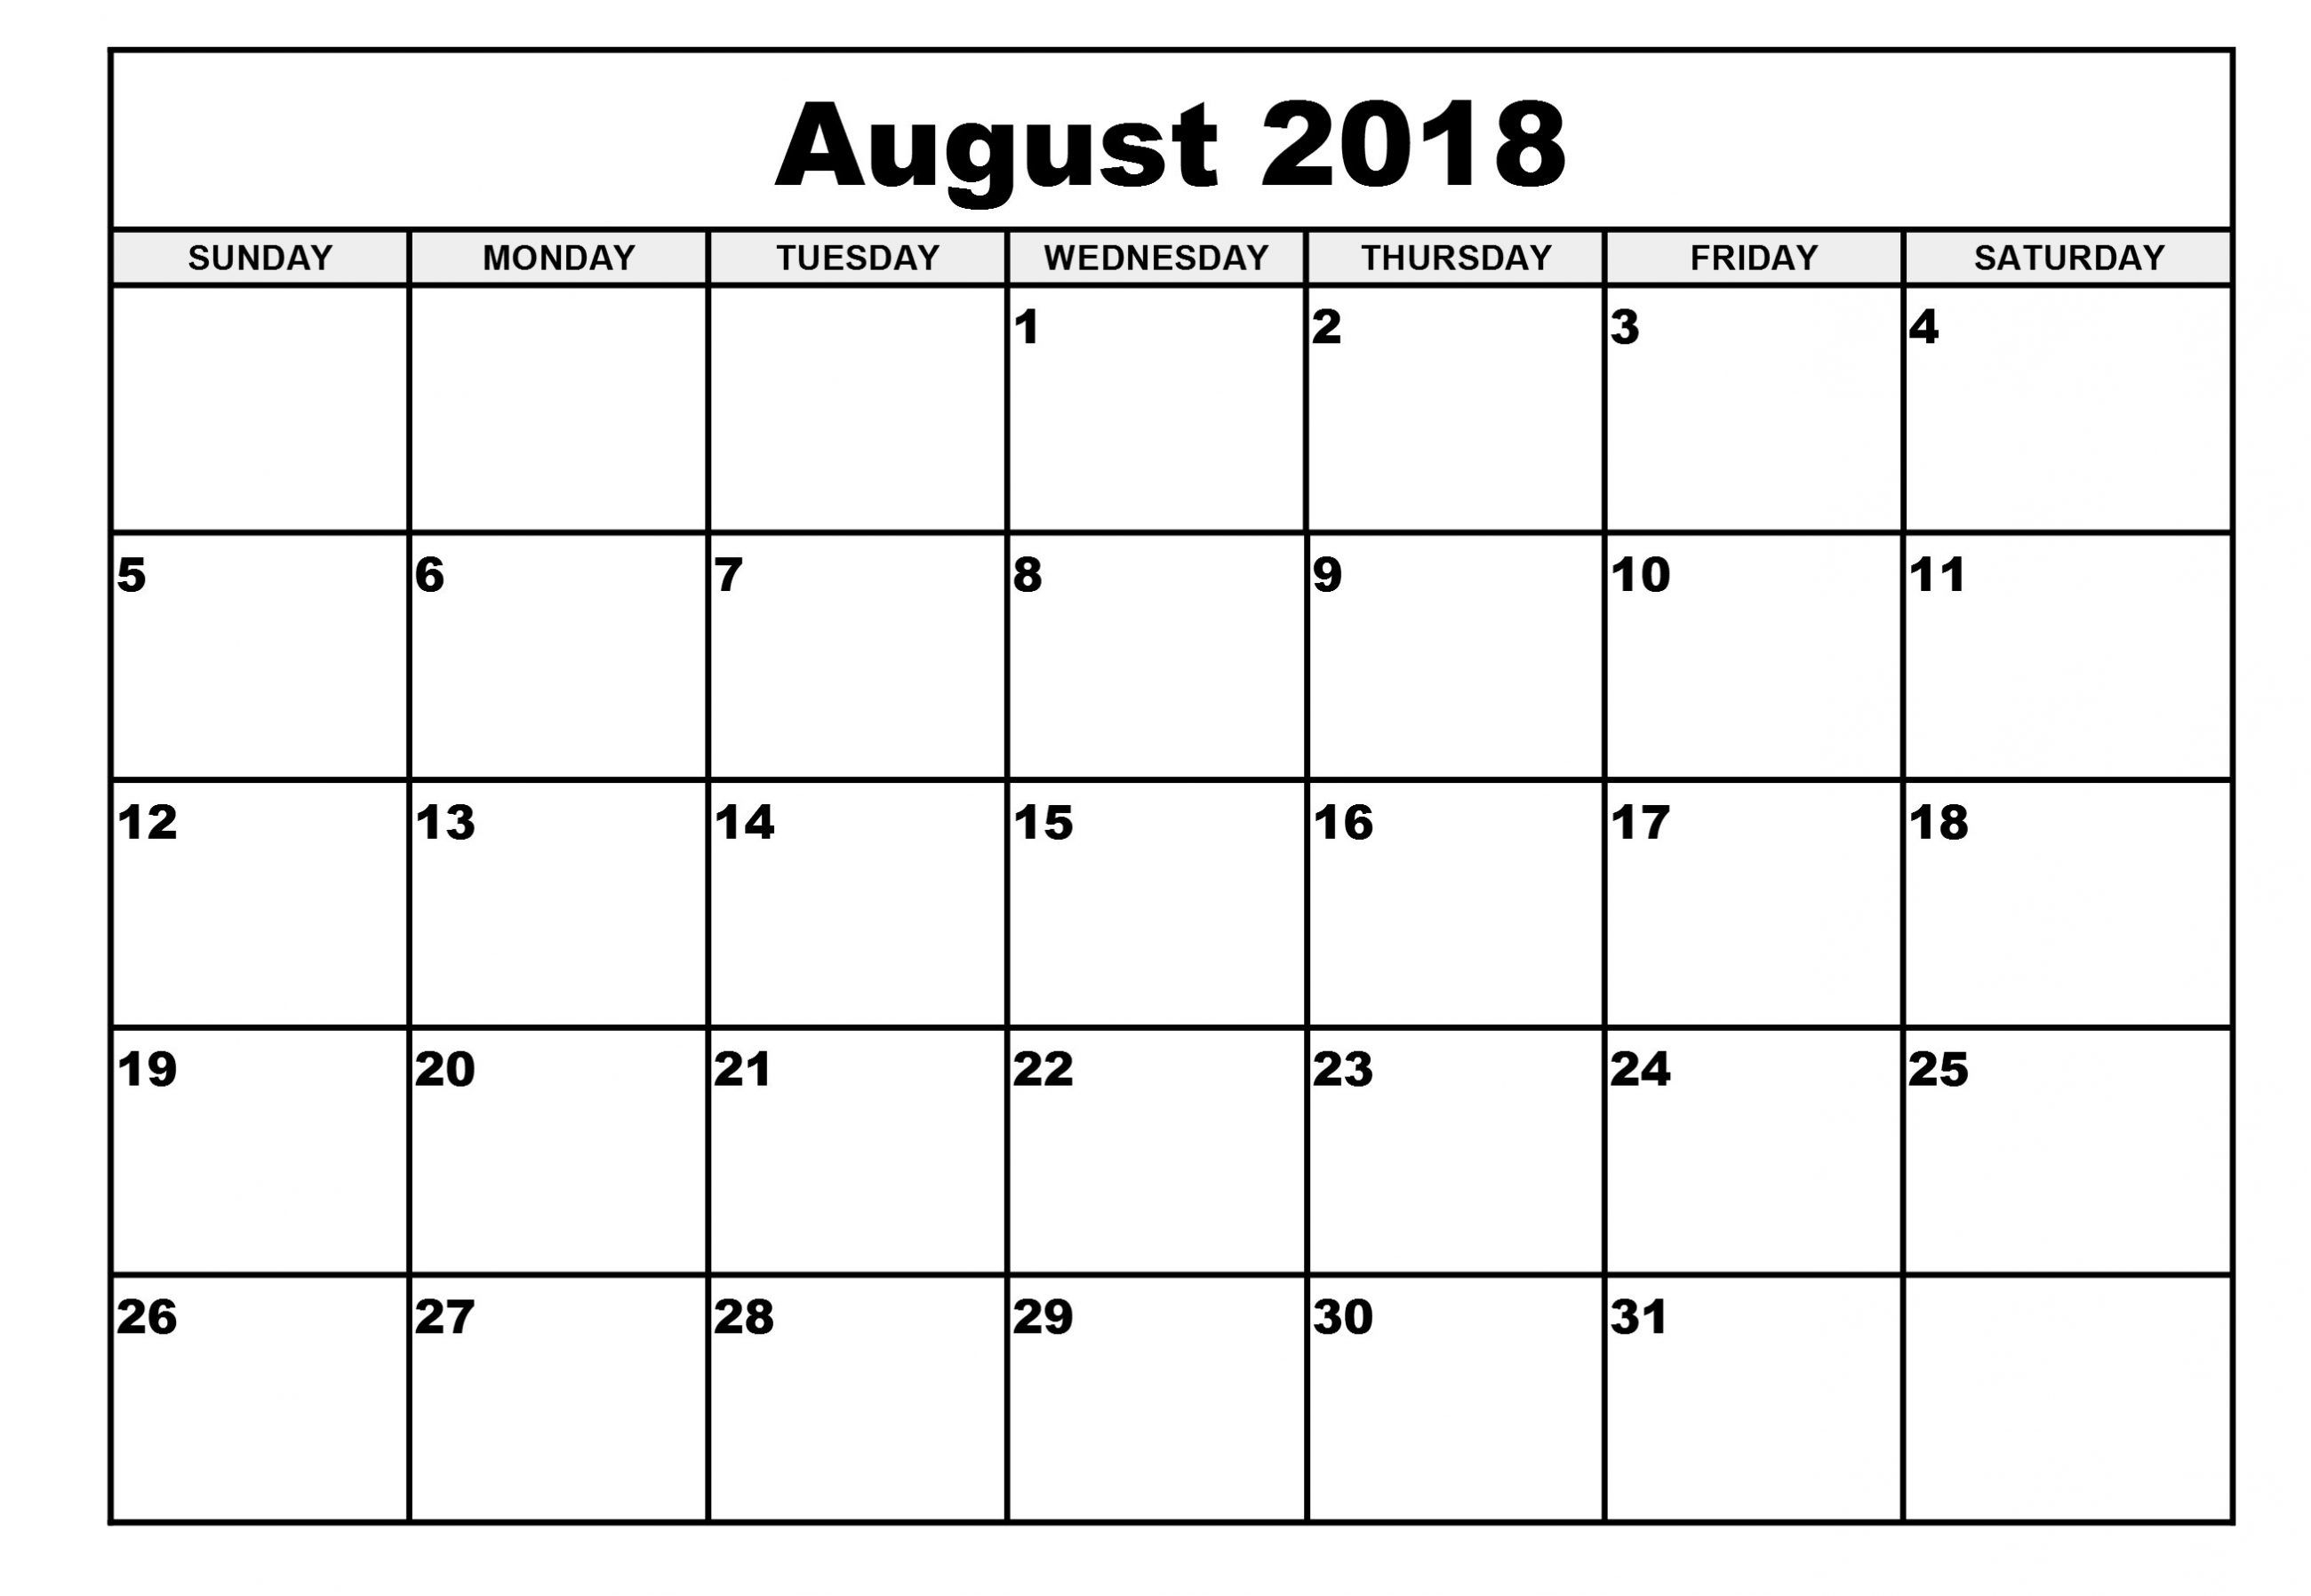 Monthly Calendar August Month 2018 | August 2018 Calendar | Monthly with August Printable Calendar Weekly Template